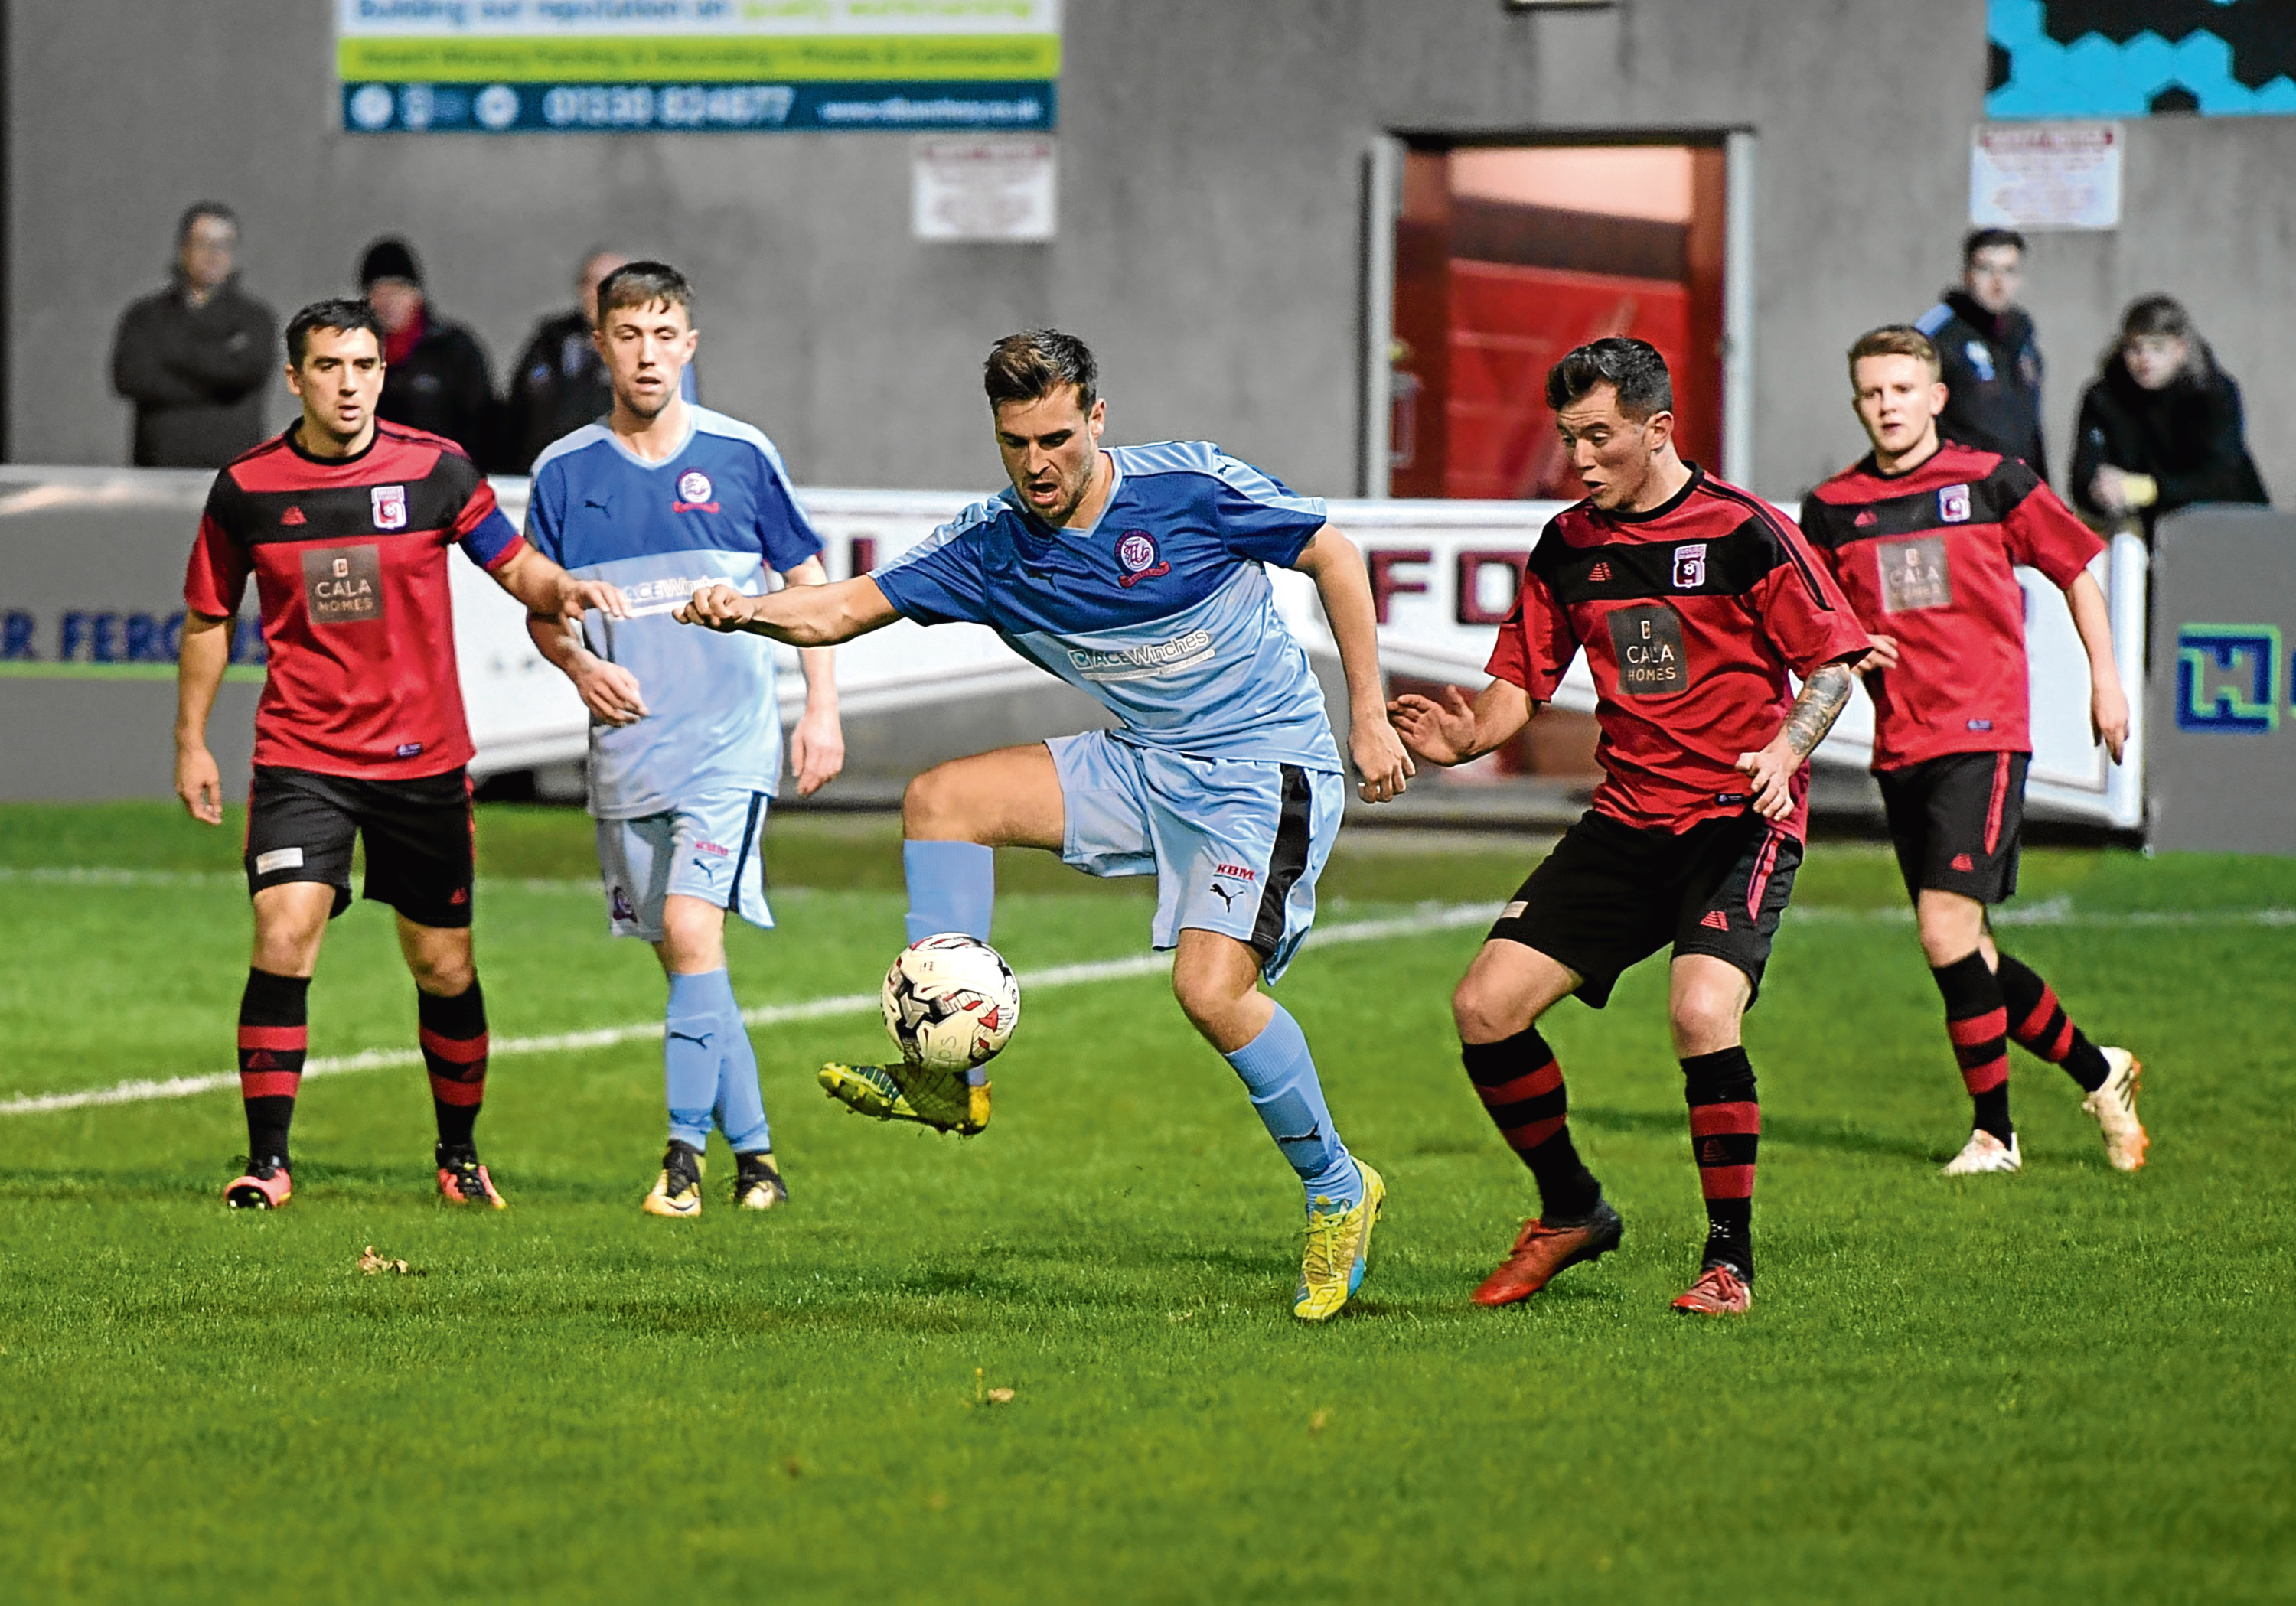 Turriff's David Ross on the ball against Inverurie Locos.